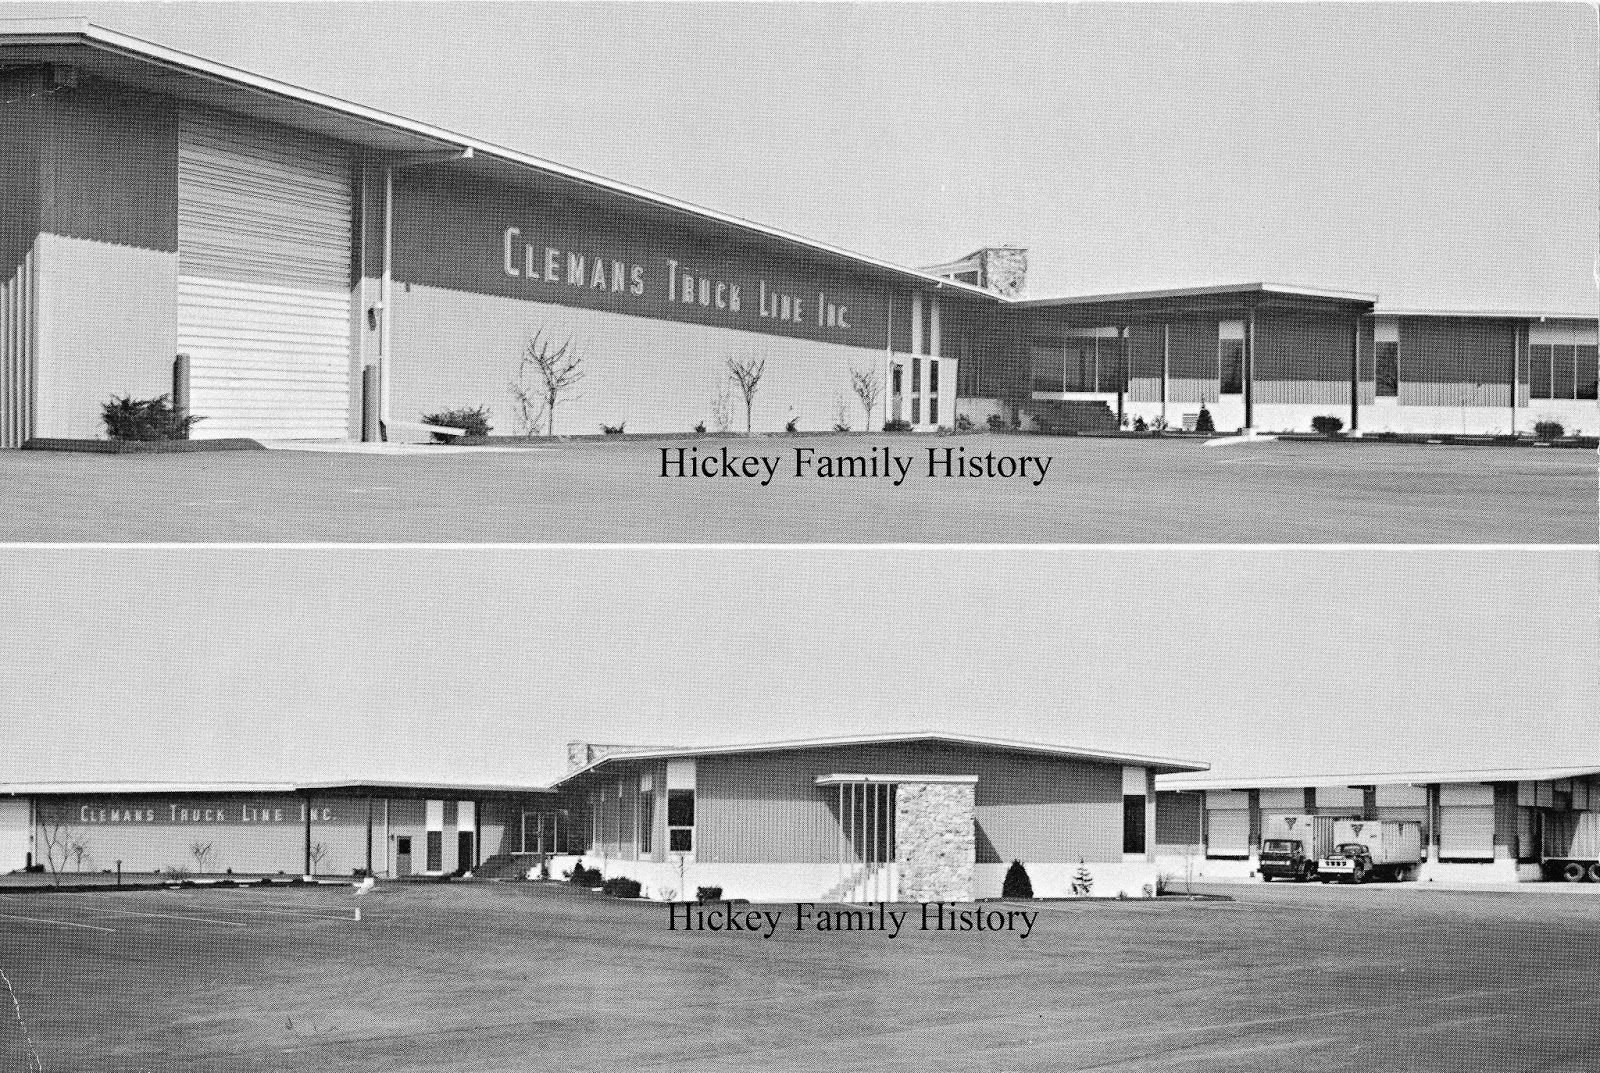 thomas l hickey 1886 1966 designed and built a truck terminal for clemans truck line inc at 815 west sample street in south bend indiana in 1965